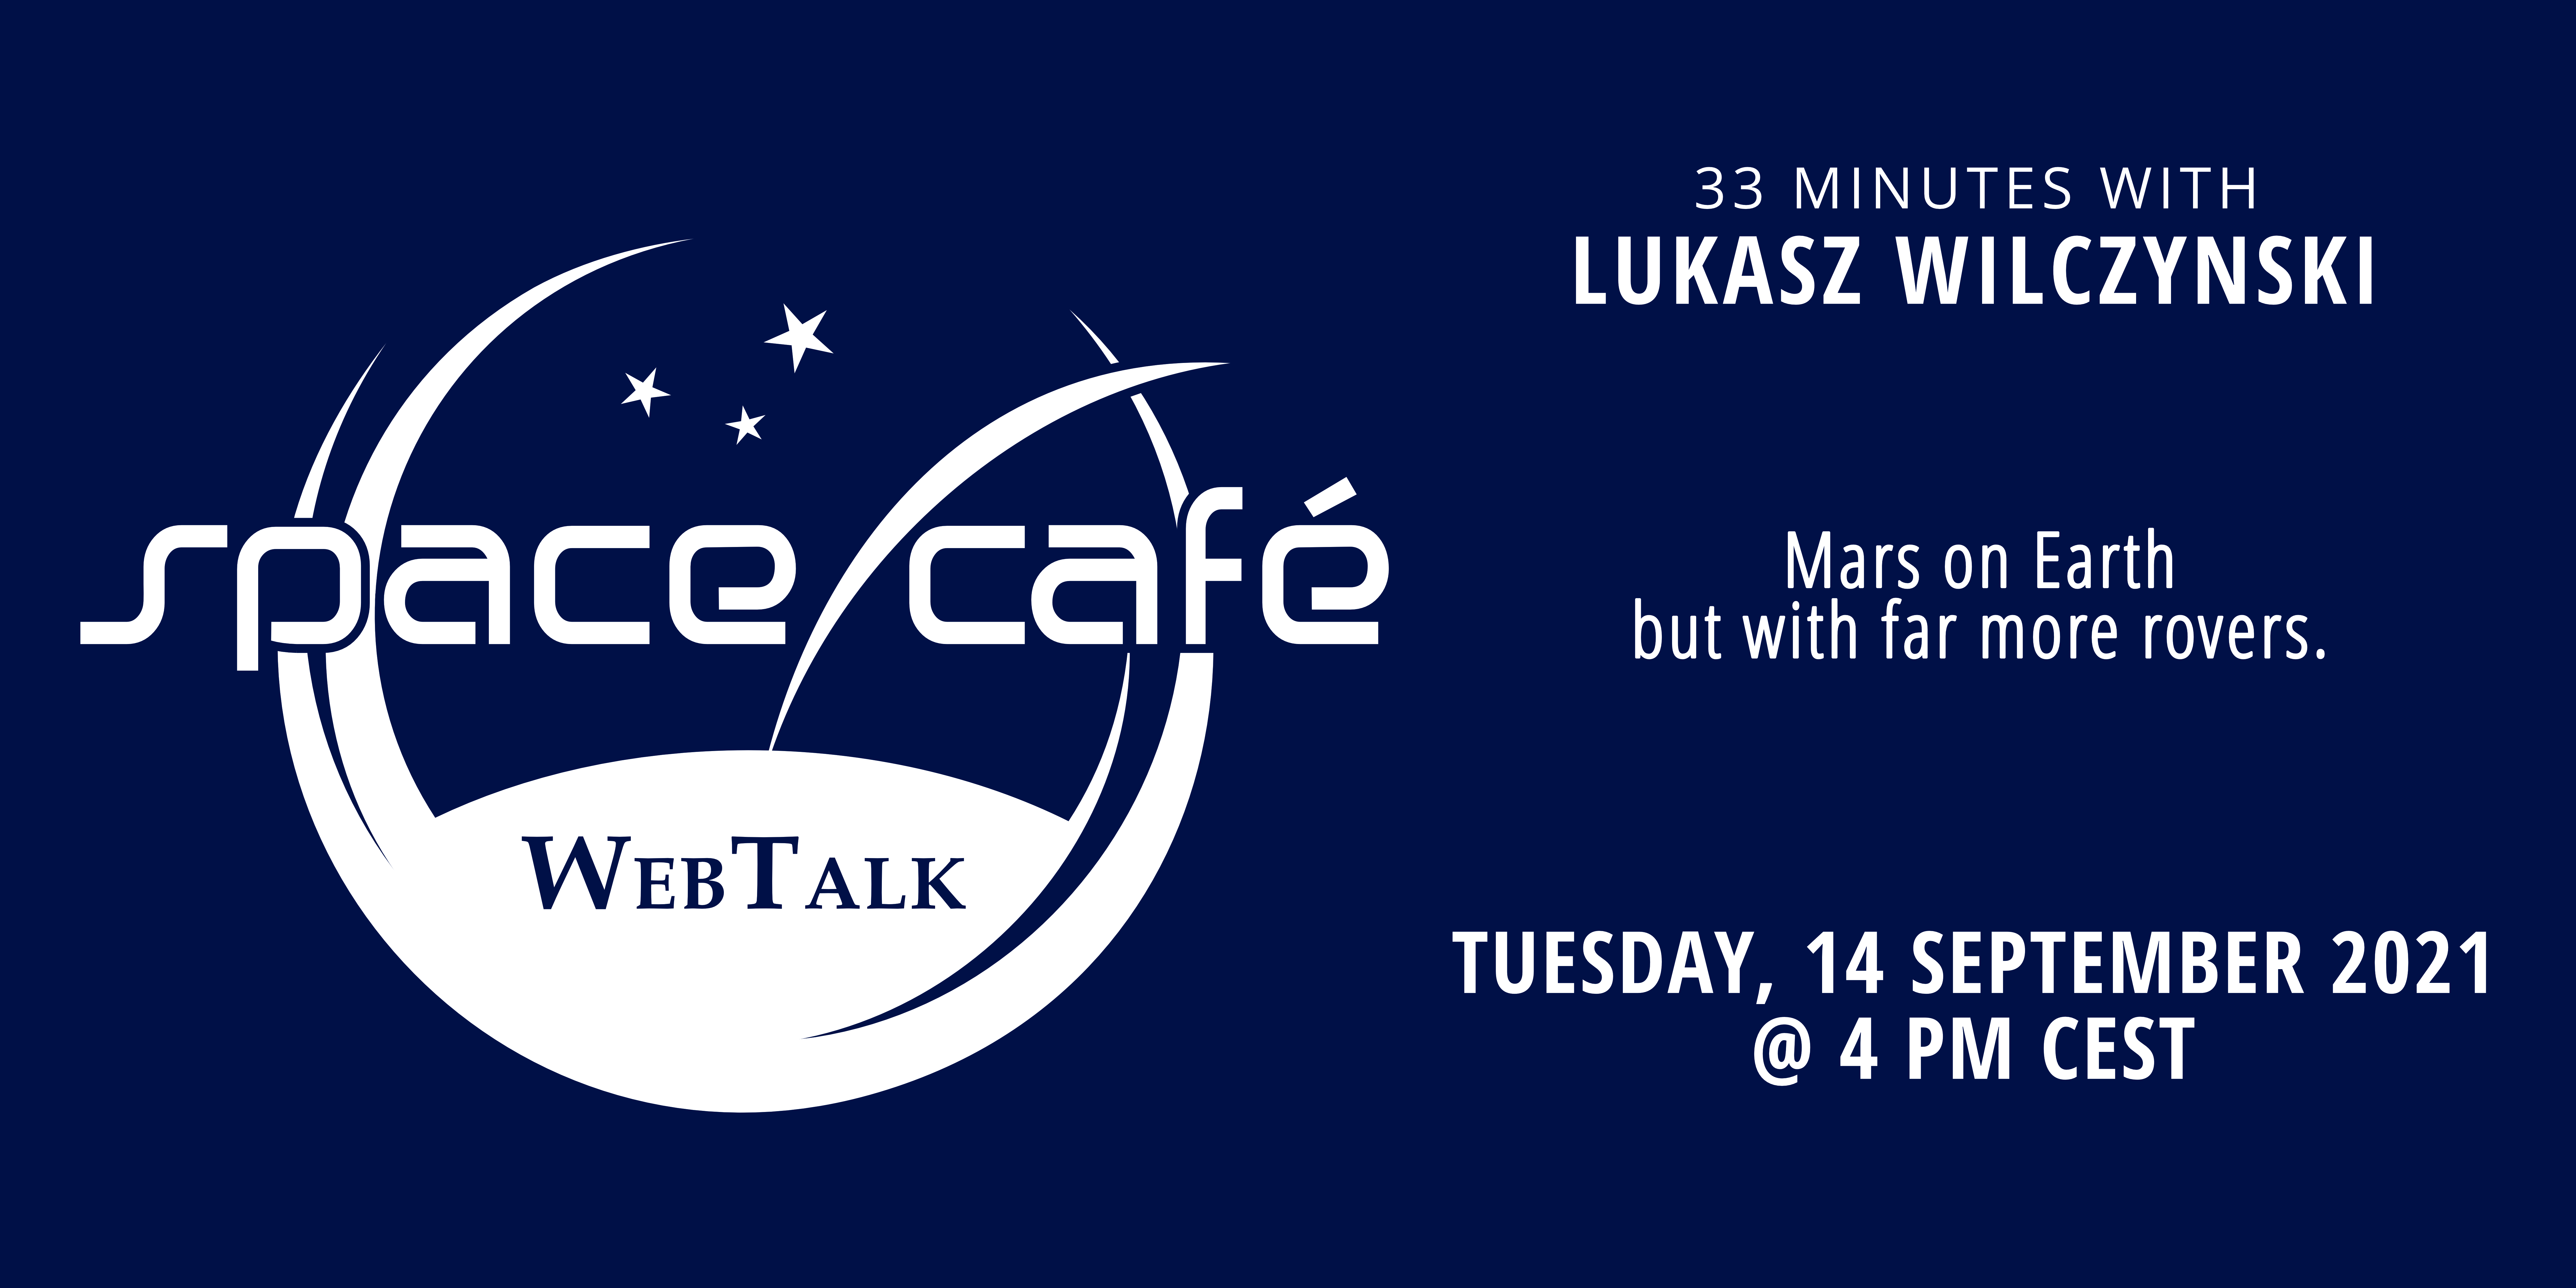 """Register Today For Our Space Café """"33 minutes with Lukasz Wilczynski"""" On 14 September 2021"""